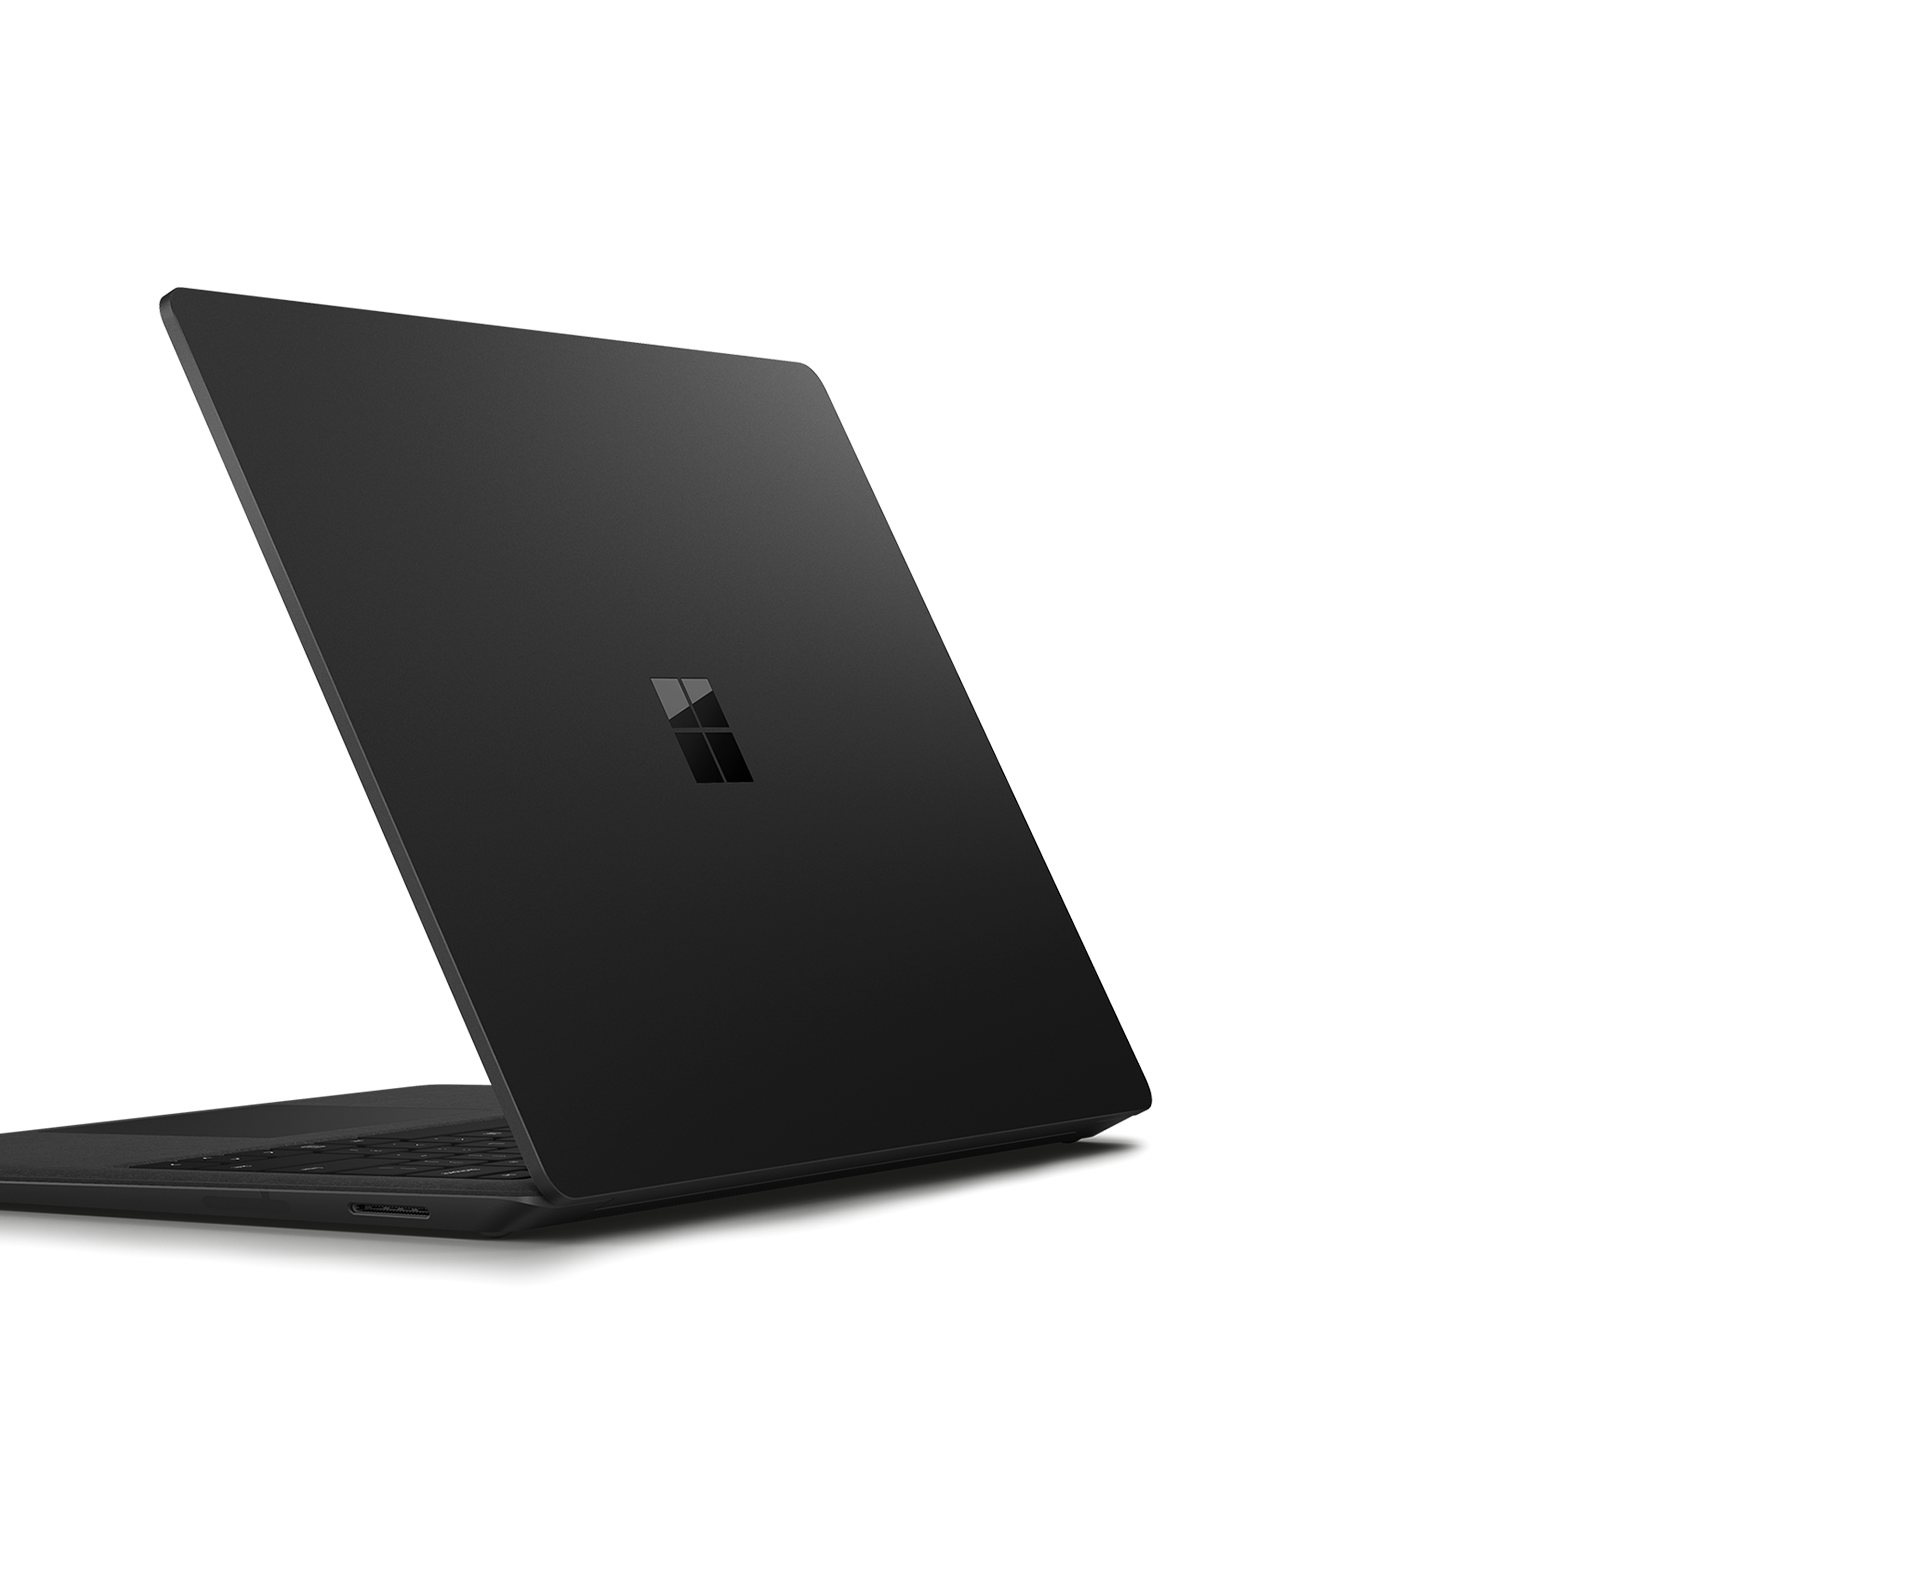 Geneigte Ansicht des Surface Laptops 2 von links